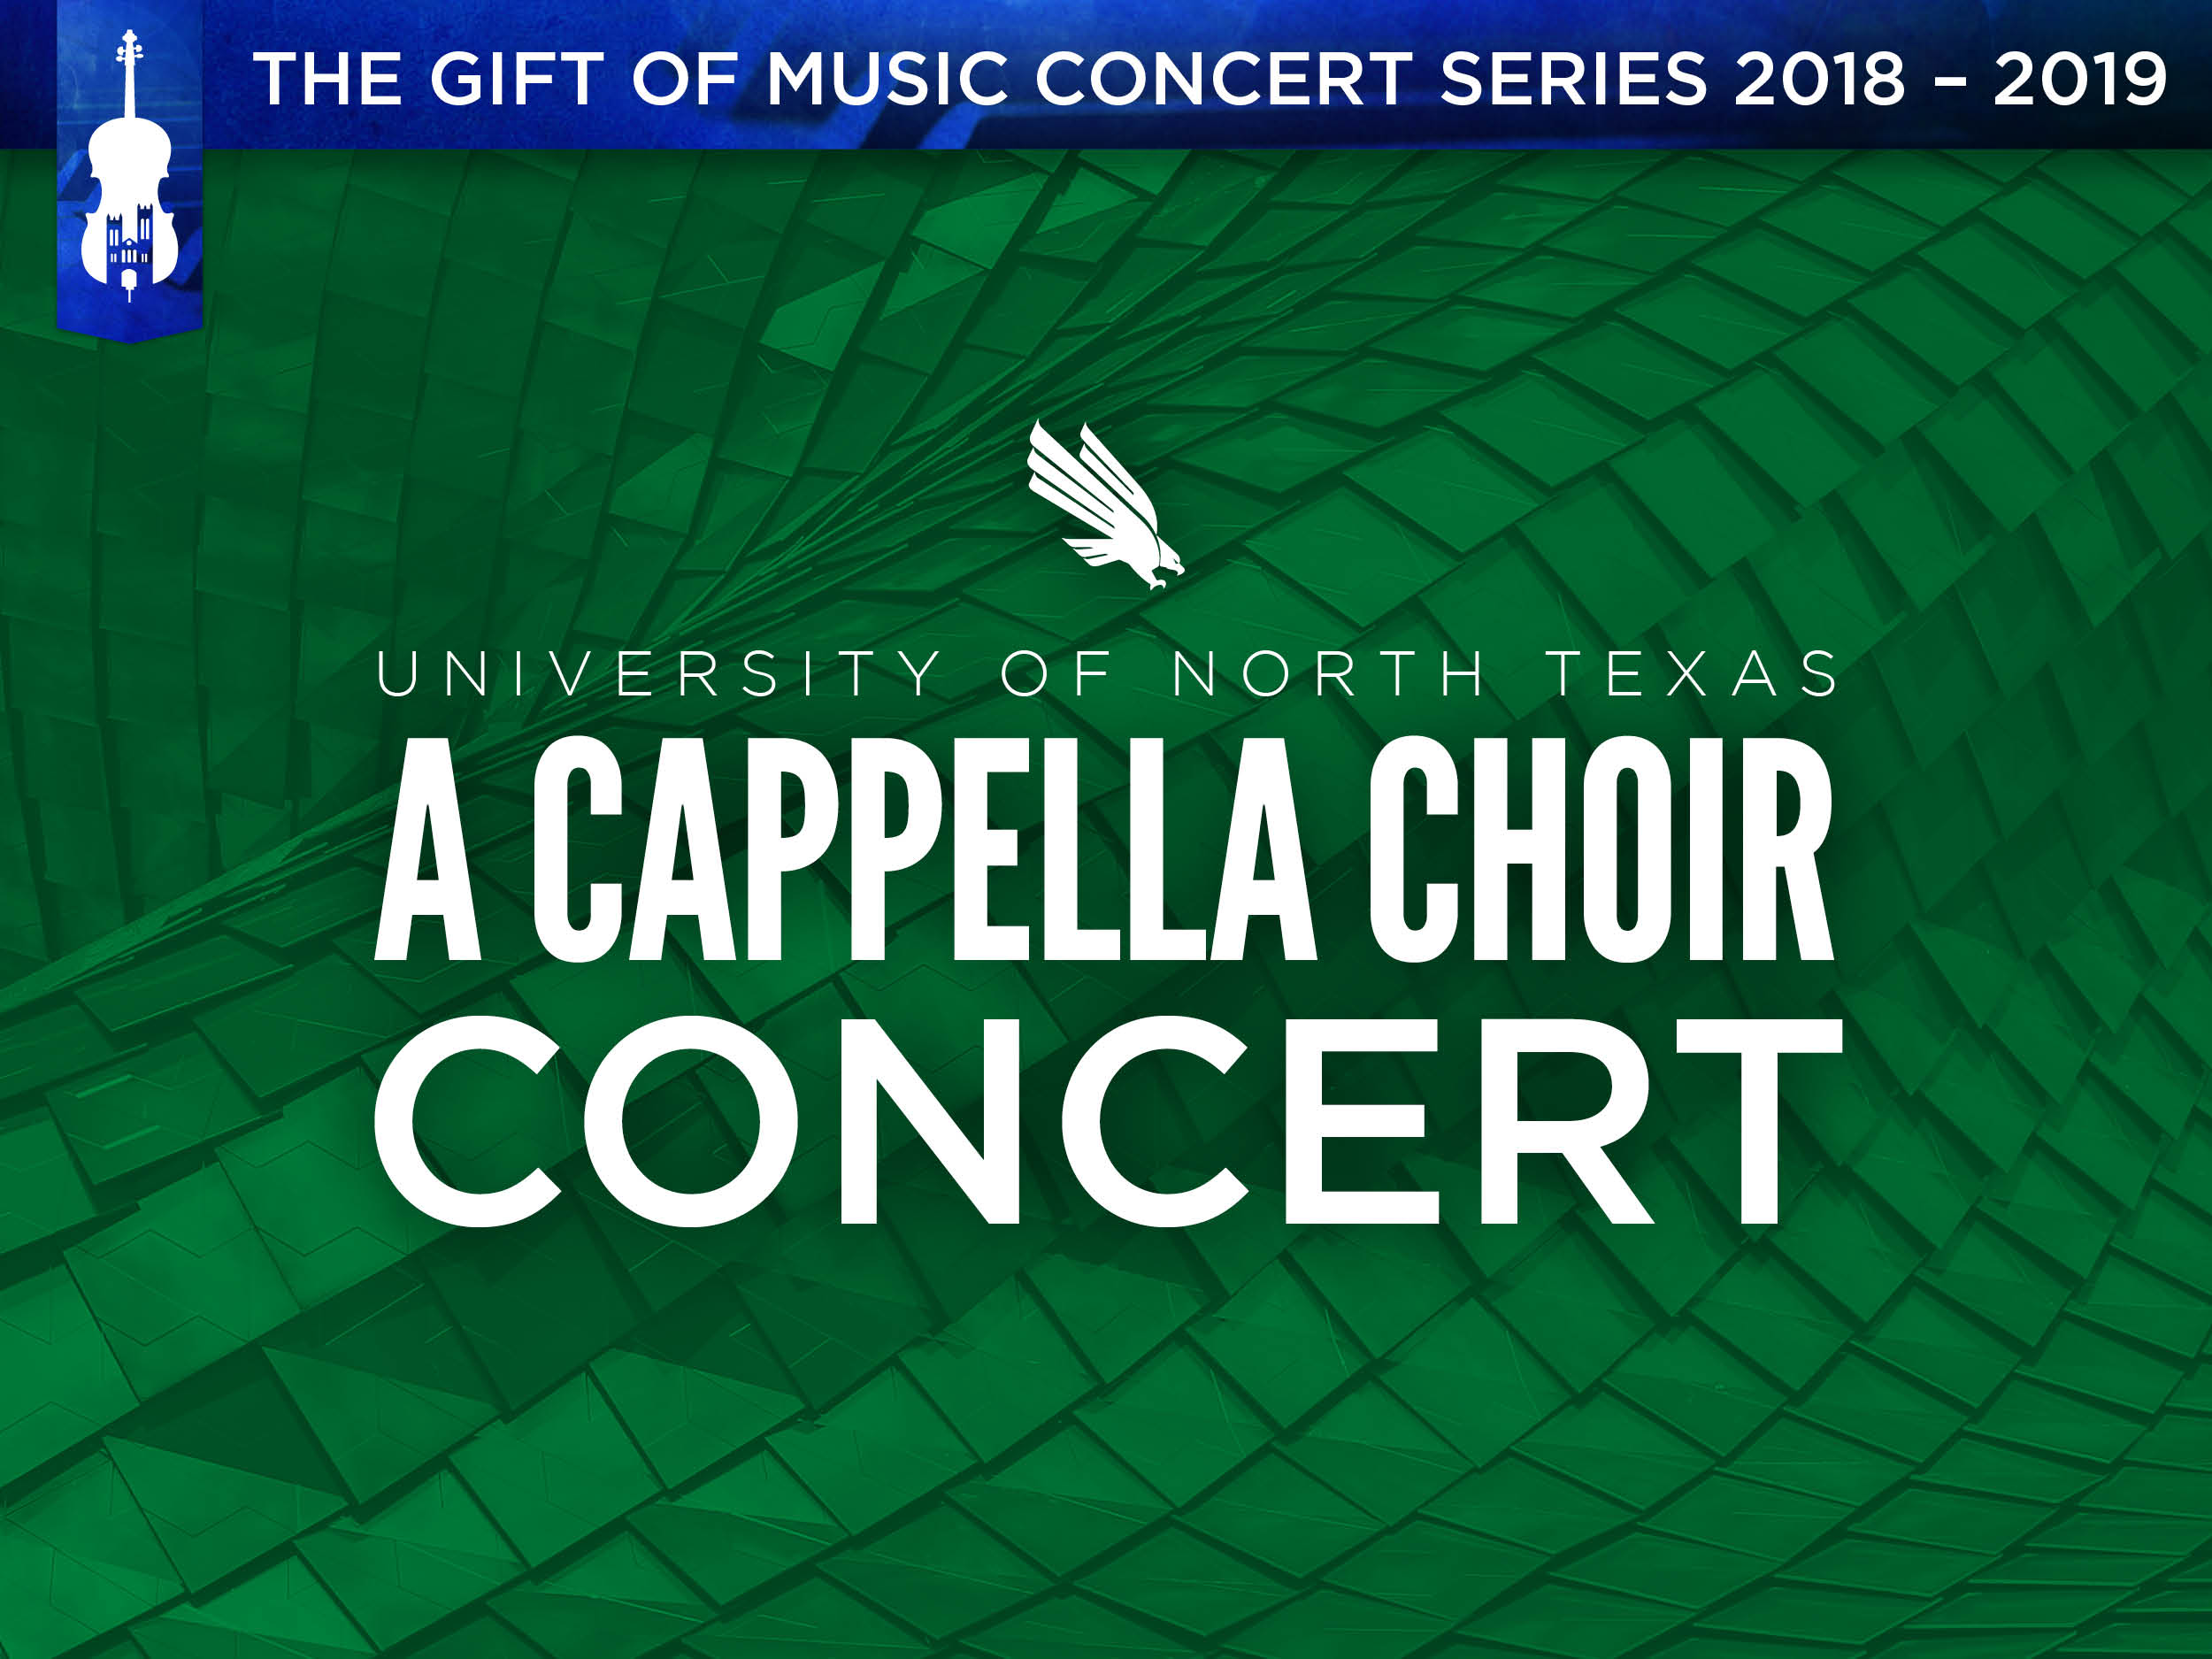 University of North Texas A Cappella Choir Concert | First